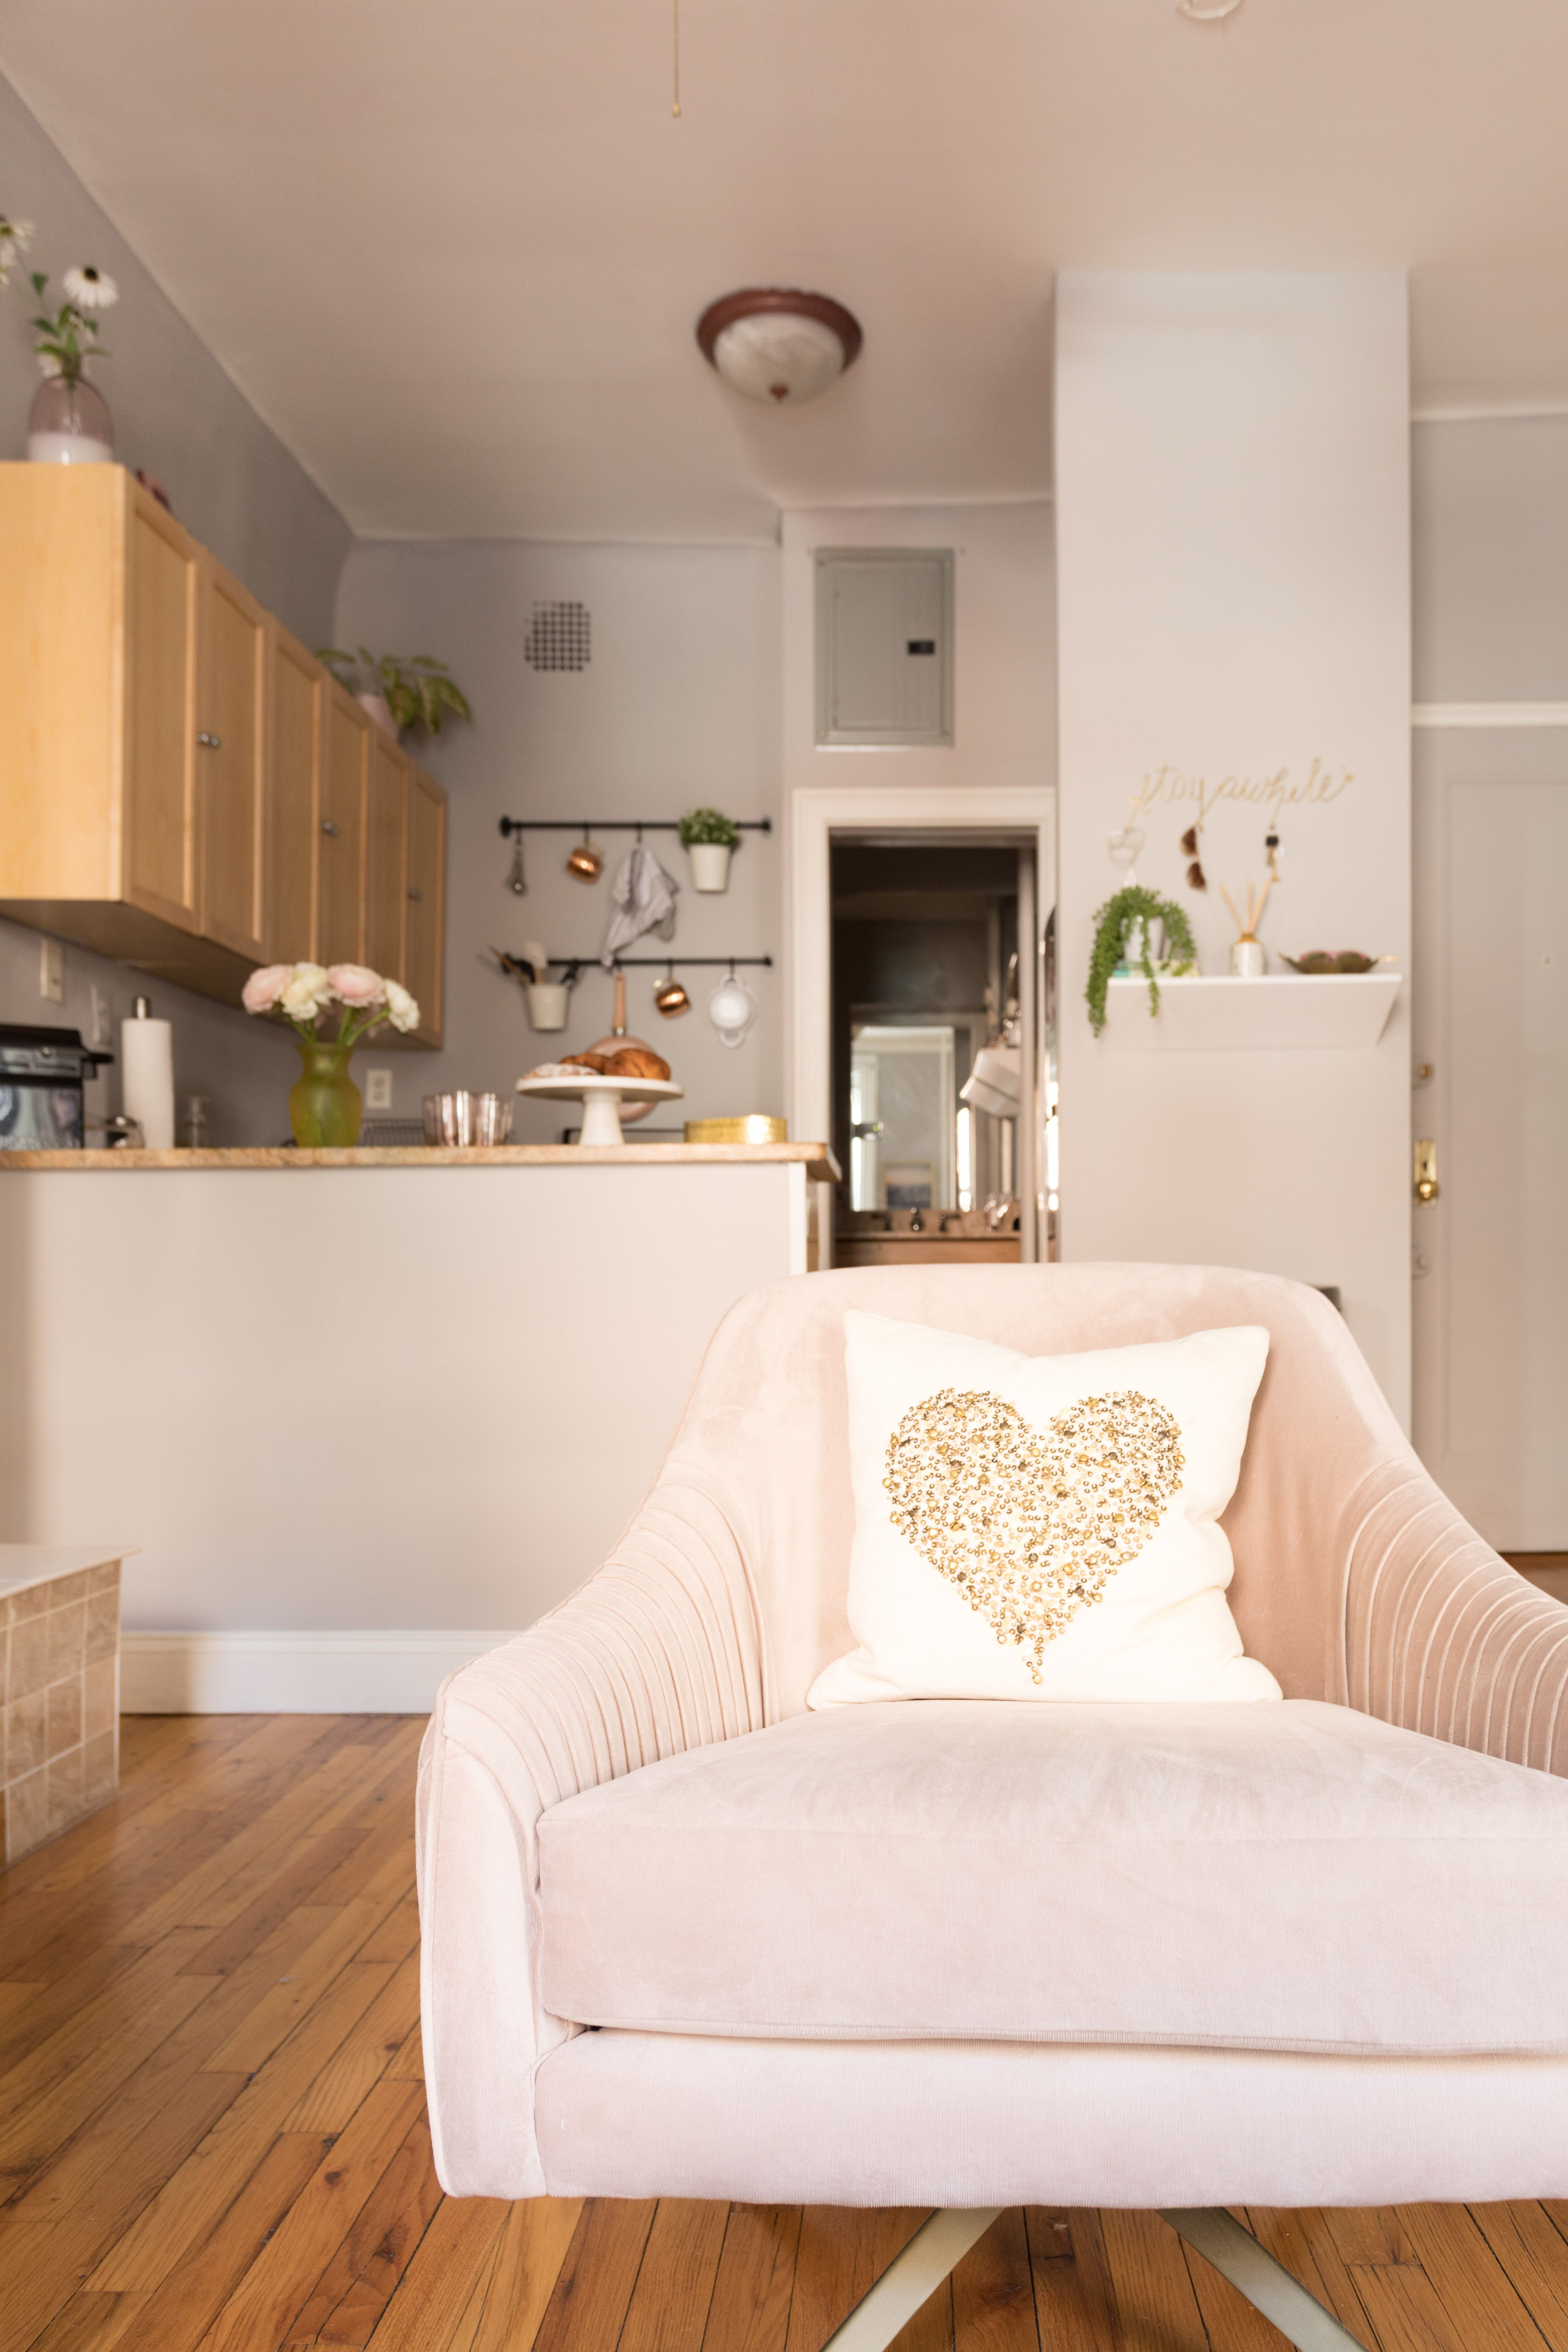 House Tour: A Cute 325 Square Foot NYC Studio | Apartment Therapy